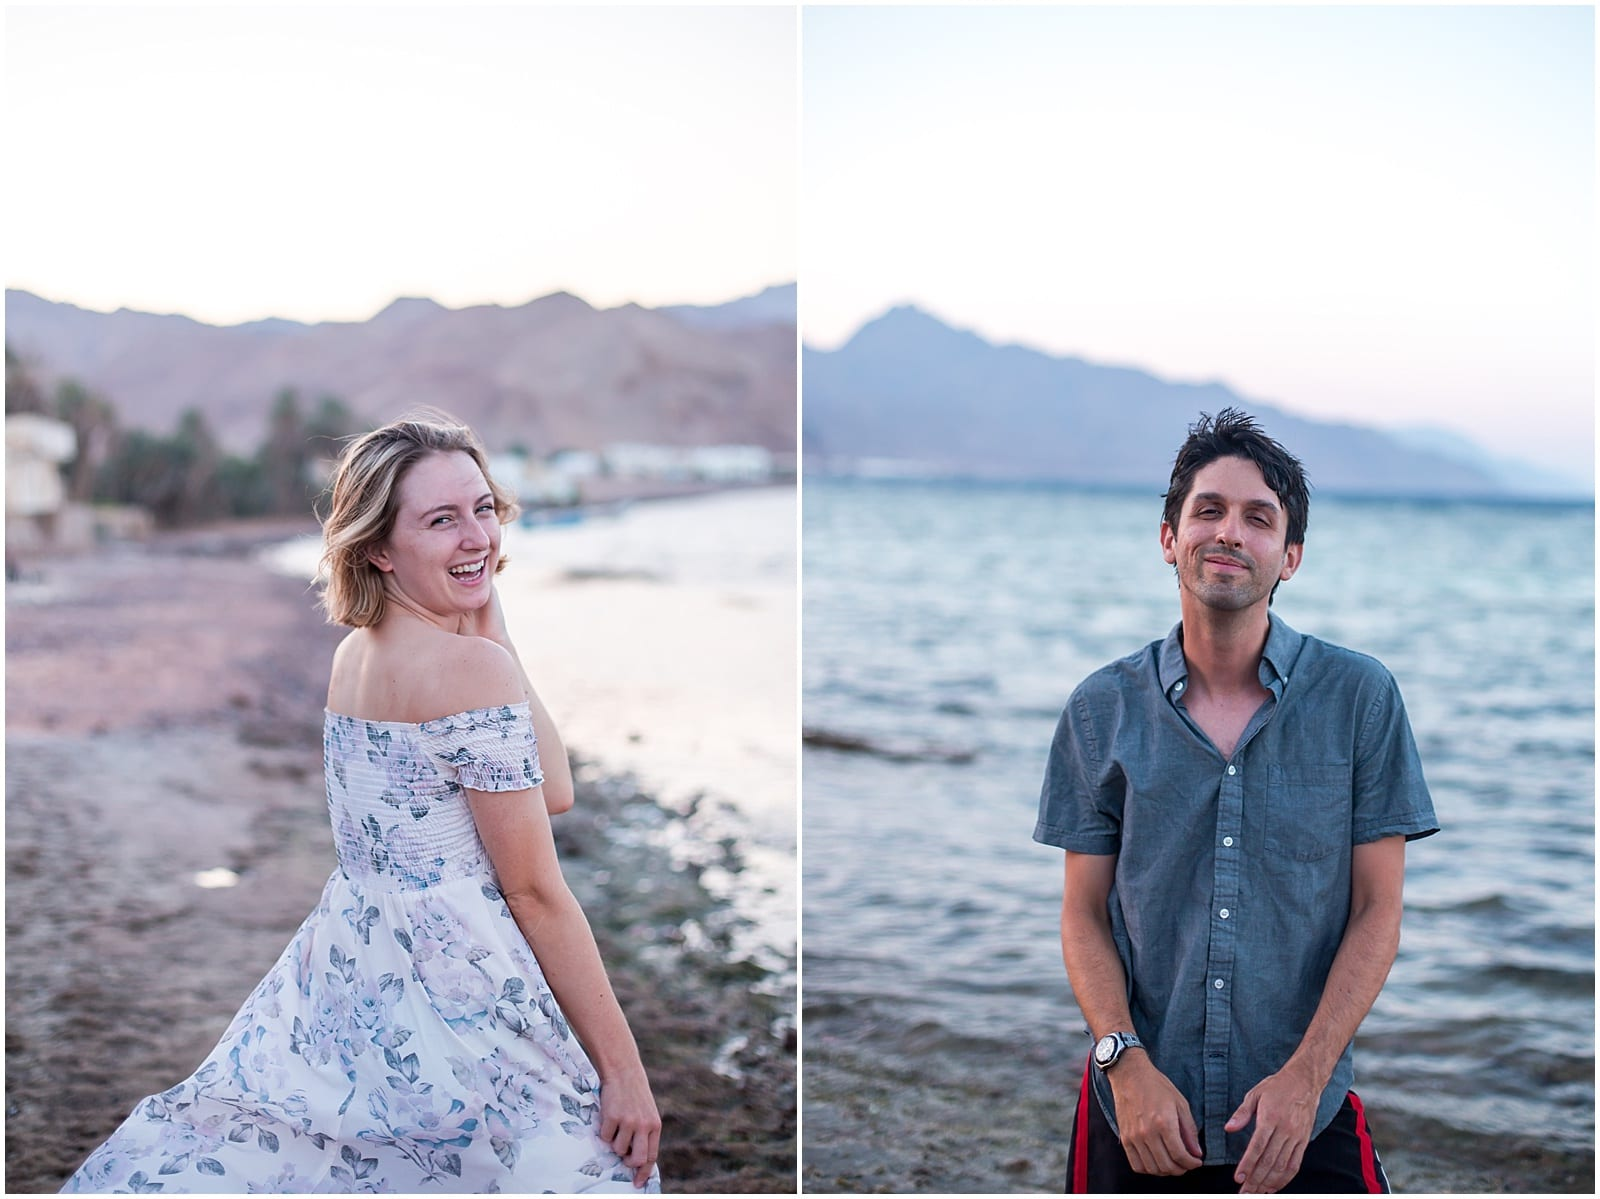 Helena Woods photographer spiritual blogger Dahab Egypt the magical power of trust and allowing